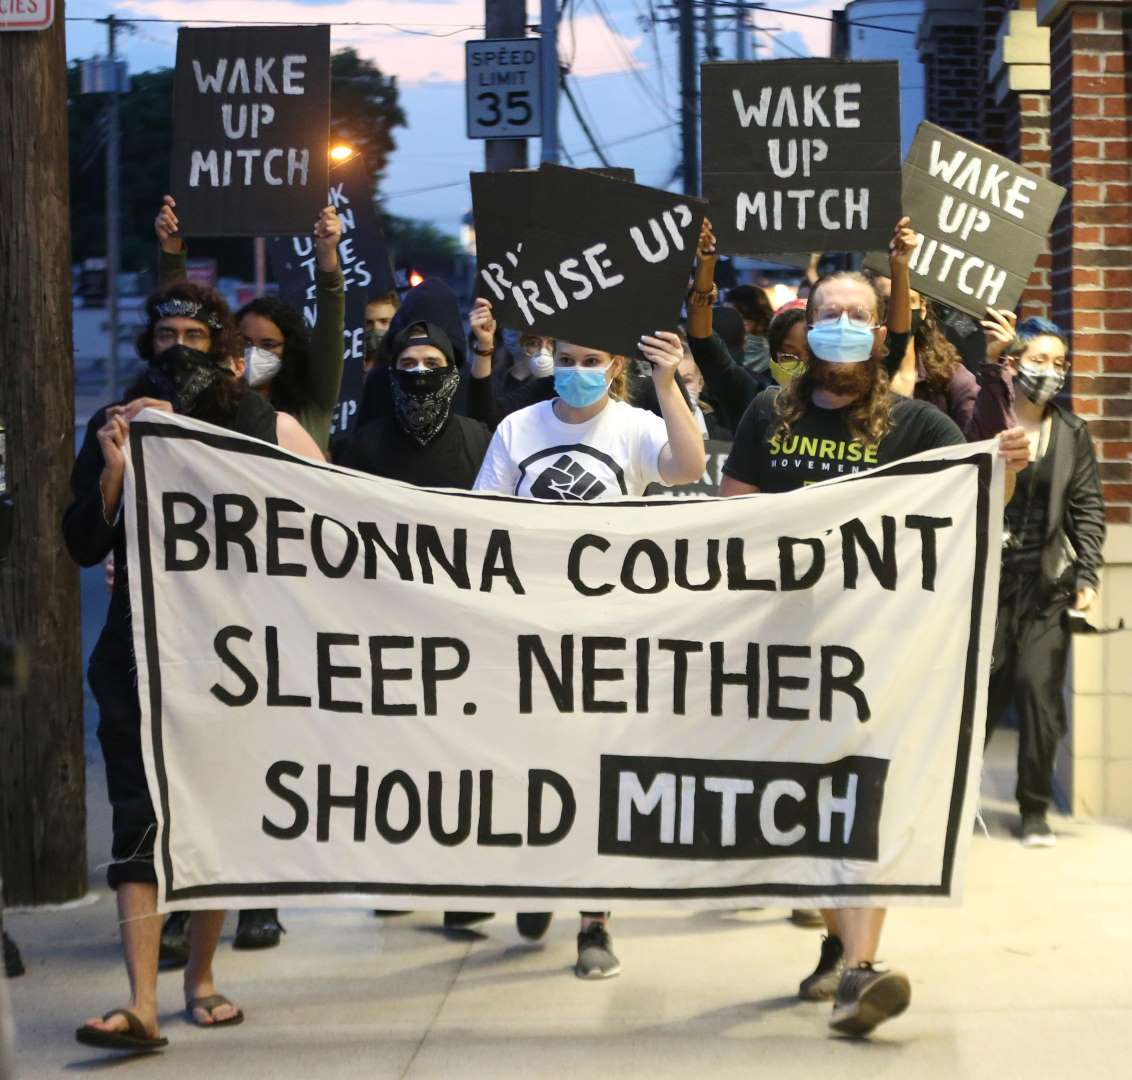 """Sunrise activists march down the sidewalk towards Mitch McConnell's KY house as the sun is rising. They're holding a large sign saying """"Breonna Couldn't Sleep. Neither Should Mitch""""."""